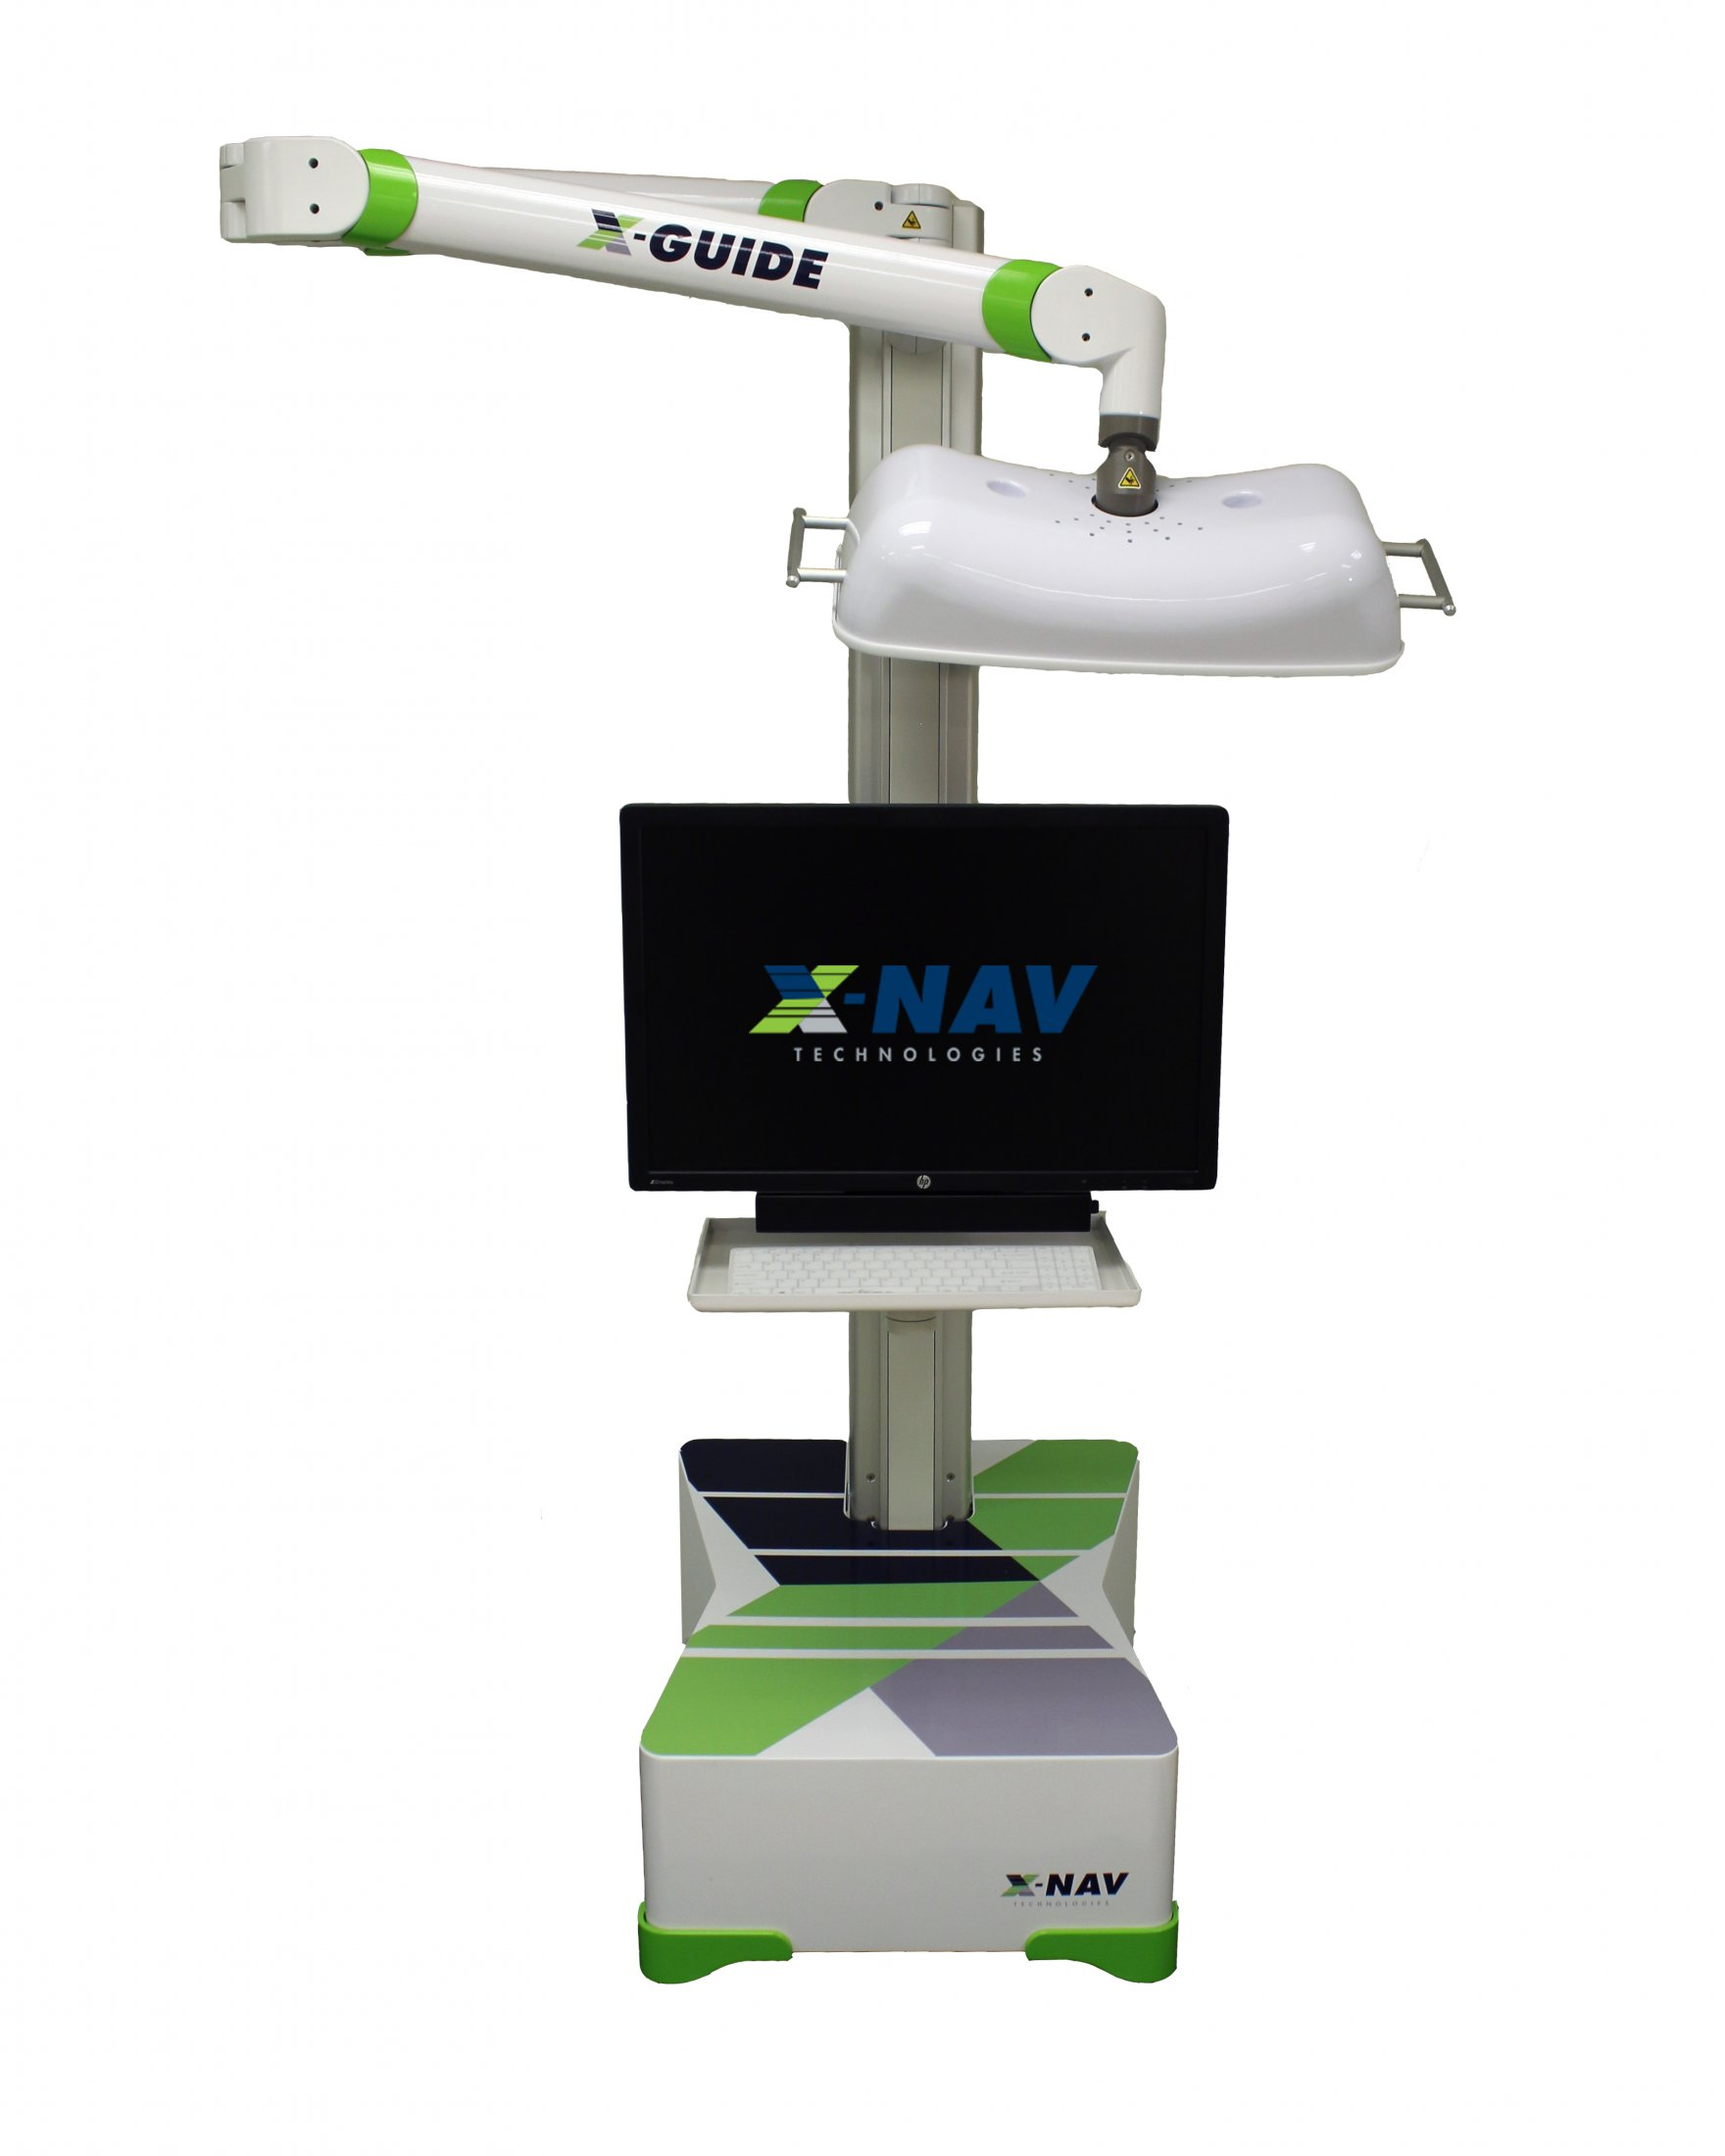 X-Nav digital dental imagery